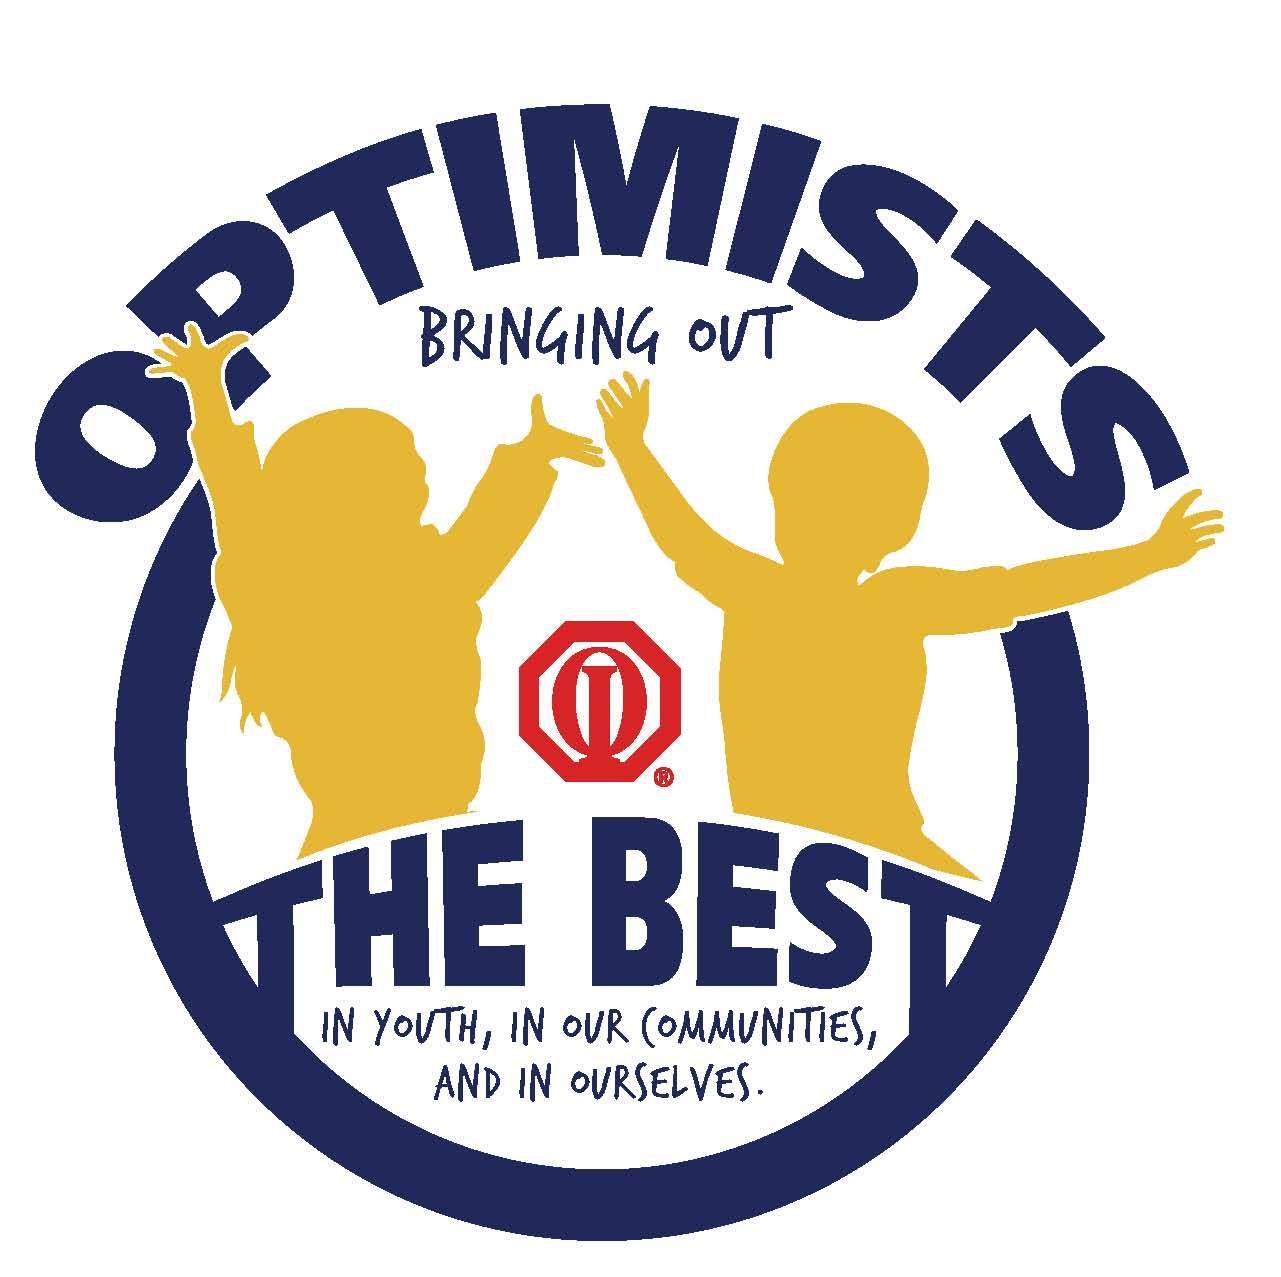 optimist international essay contest 2015